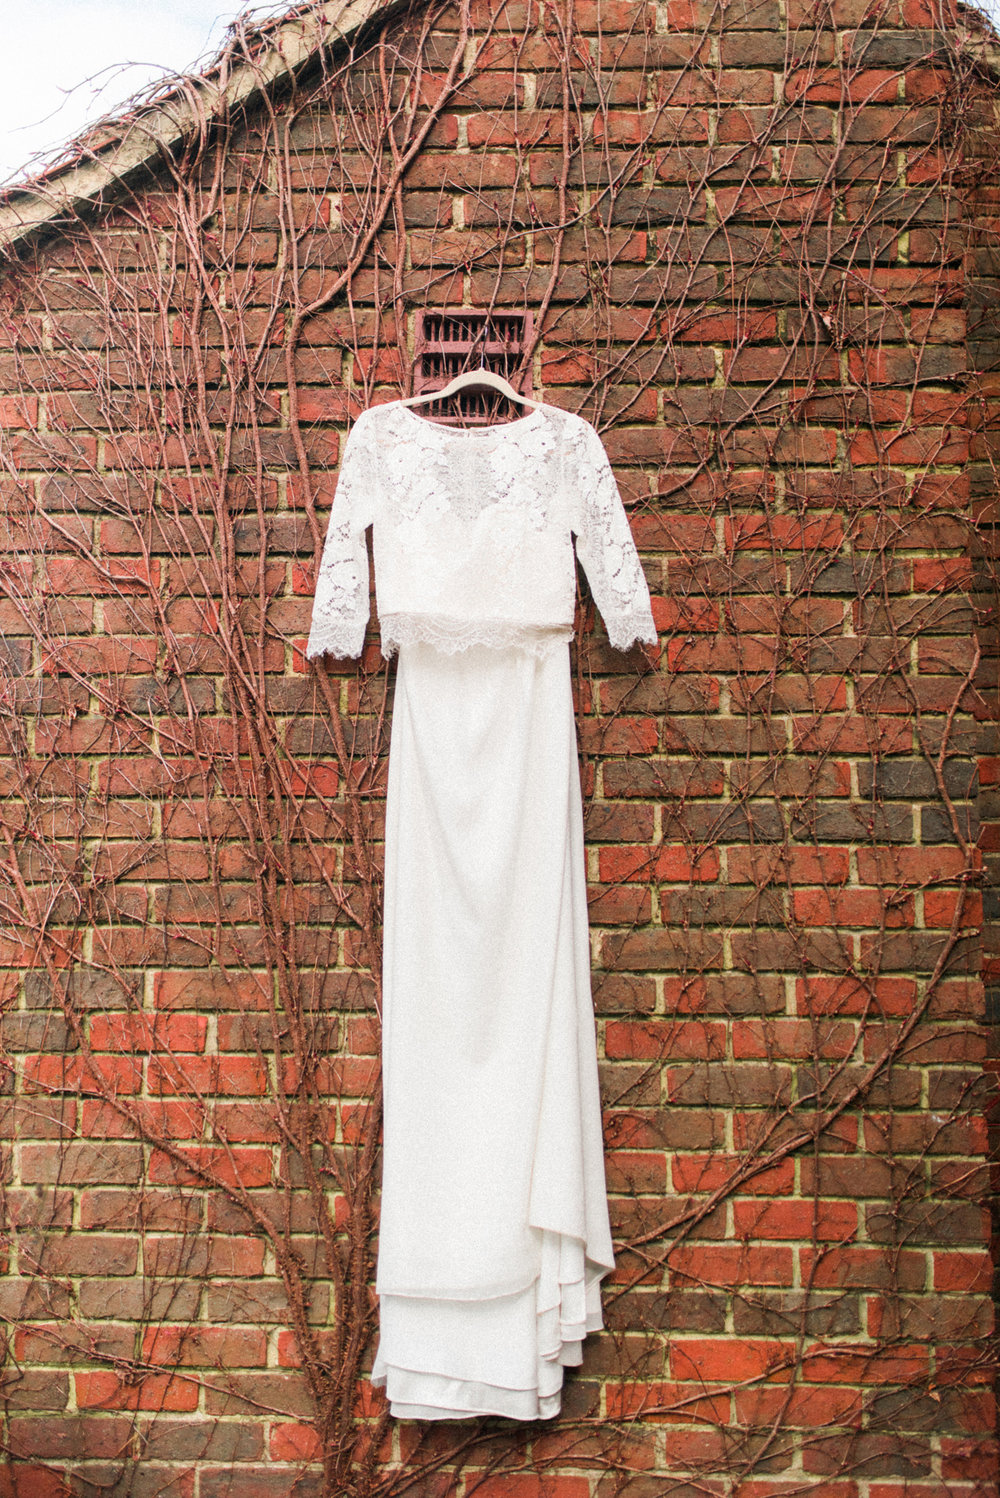 Vintage Lace Wedding Dress - A Styled London Elopement - Adriana Morais Fotografia